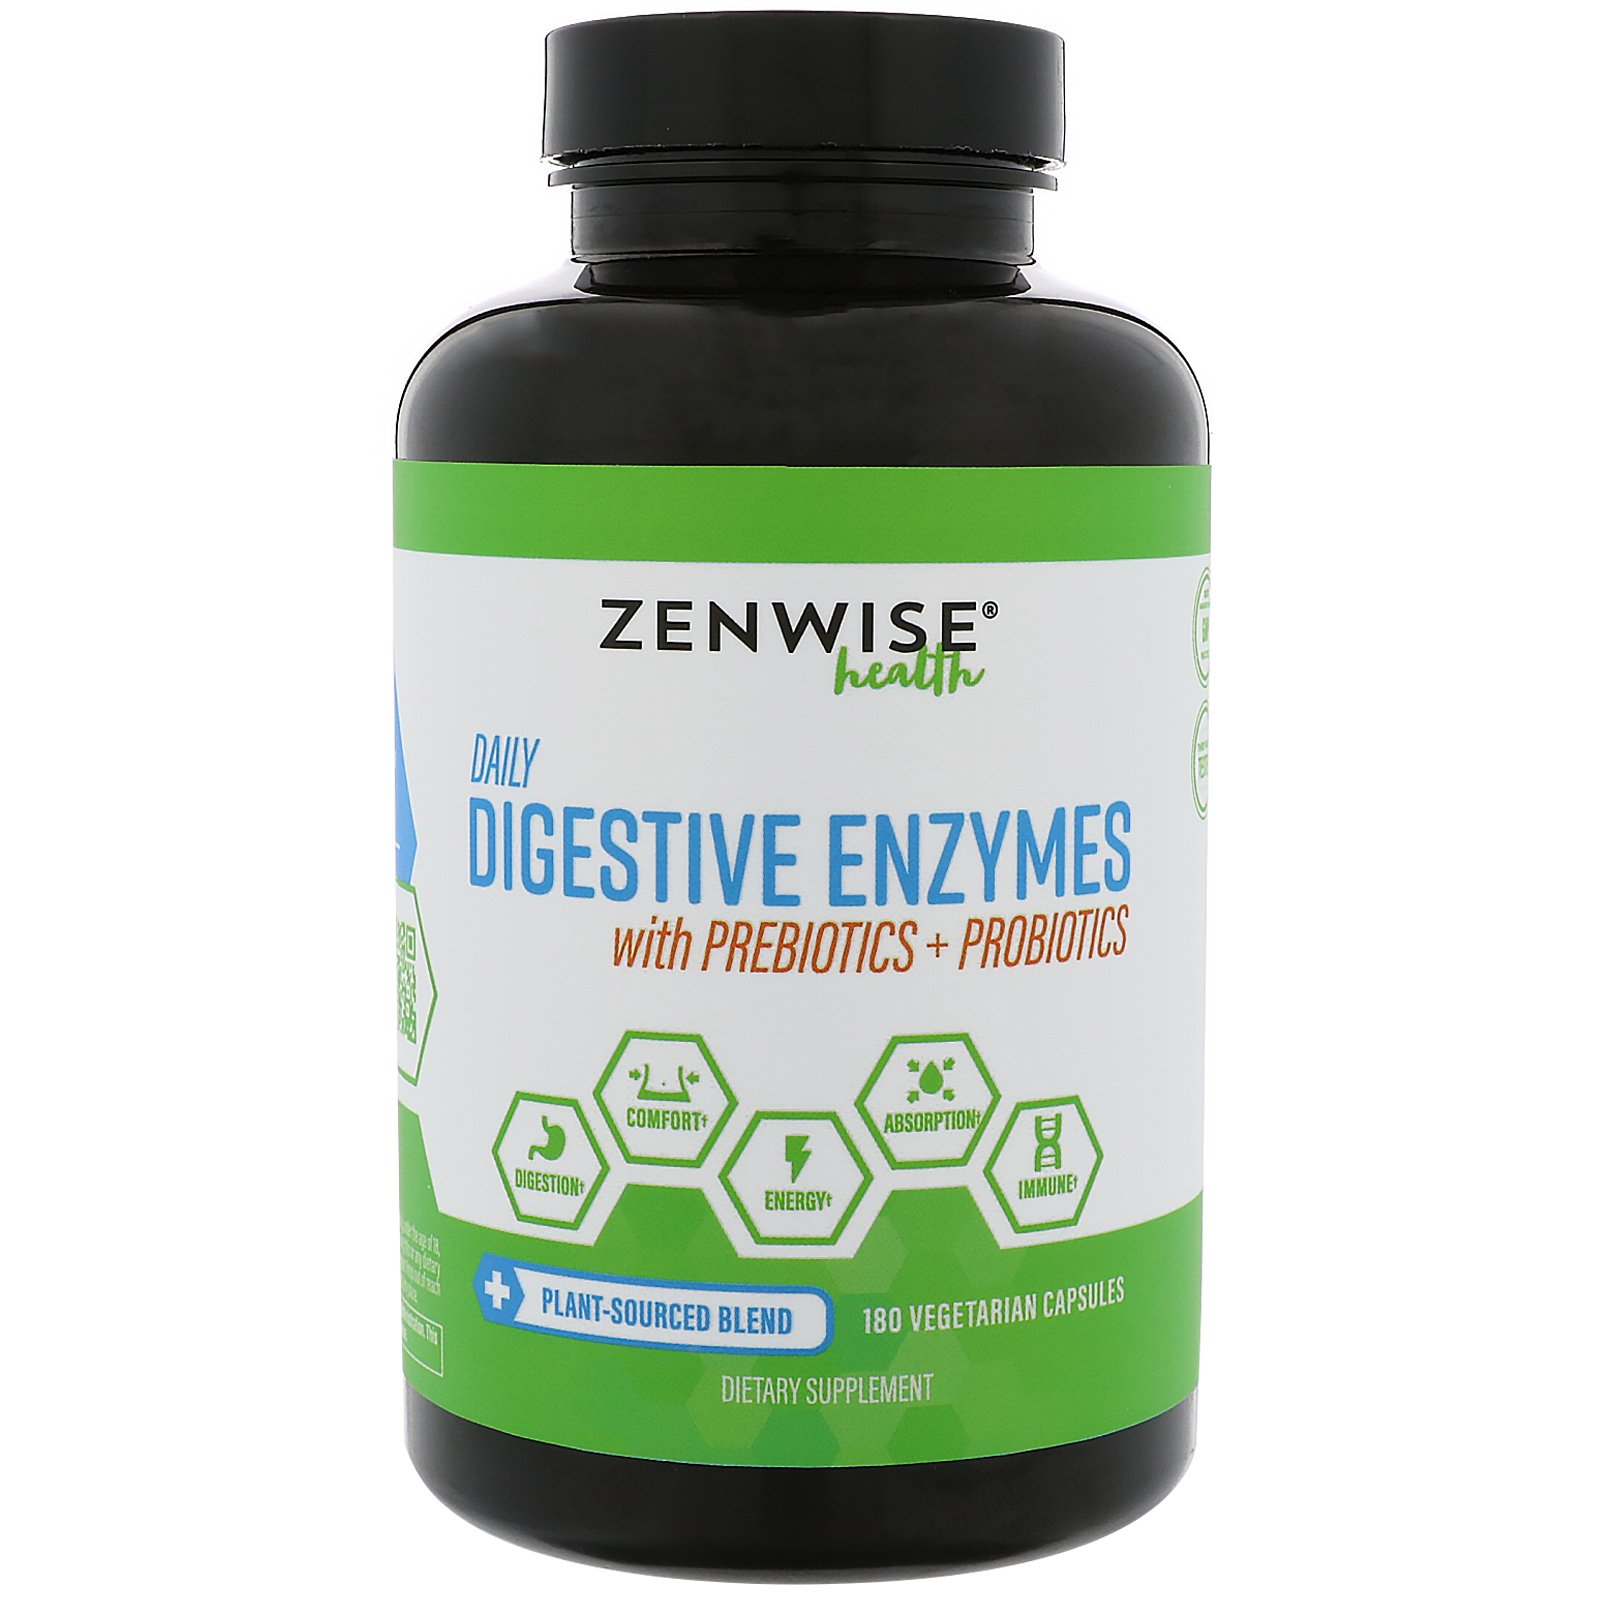 Zenwise Health Daily Digestive Enzymes with Prebiotics Probiotics 180 Vegetarian Capsules